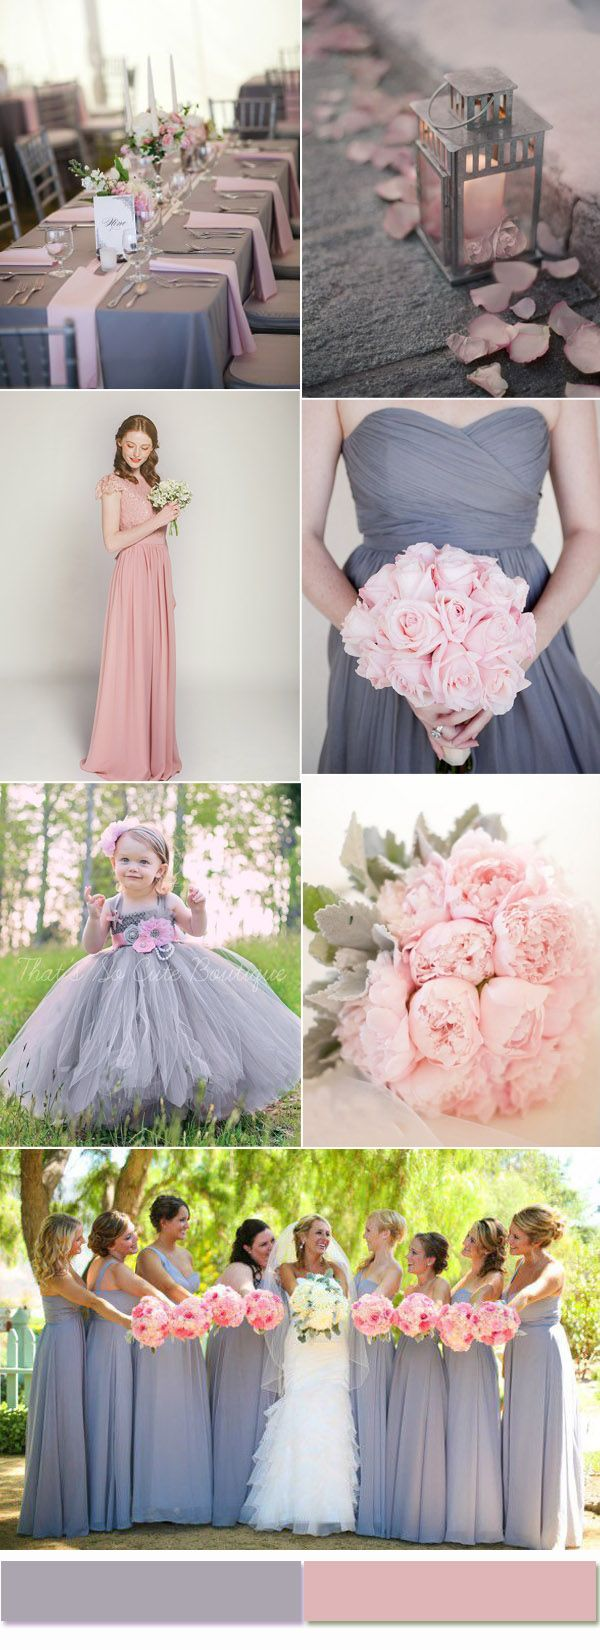 2017 Most Trendy And Hot Color Combinations Based On The Wedding Report Blush Grey Weddingpink